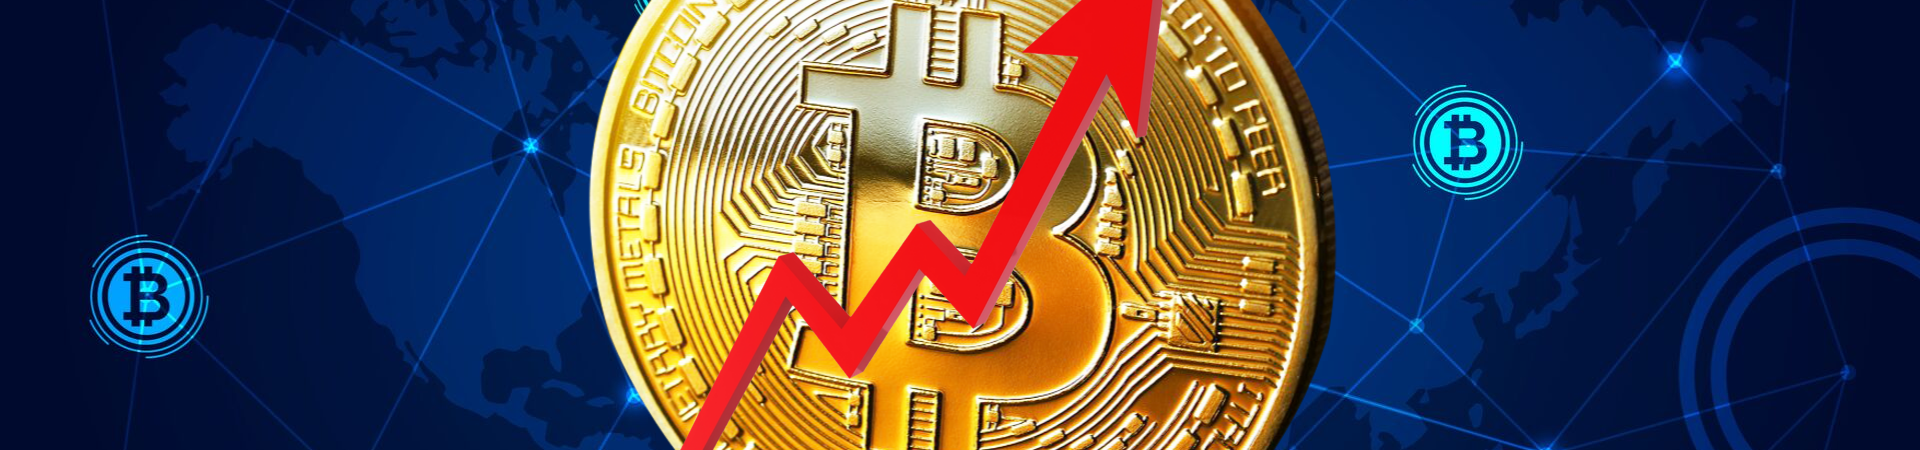 Crypto Analyst Believes an All-Time High for Bitcoin Before Next Halving